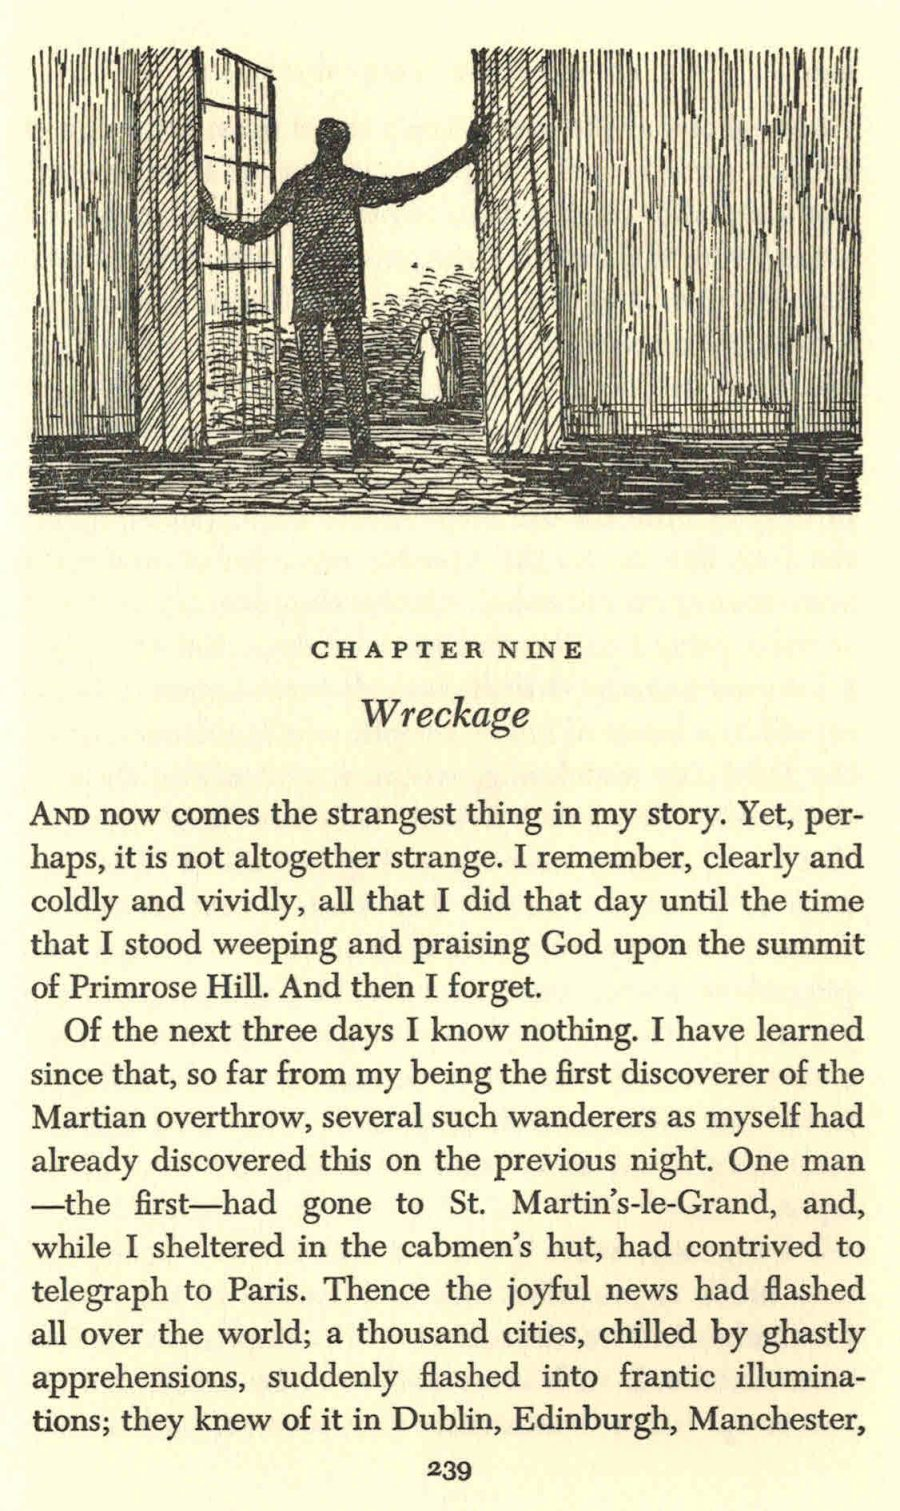 Edward Gorey Illustrates H.G. Wells' The War of the Worlds in His Inimitable Gothic Style (1960) Artes & contextos Wells4 e1494910159951